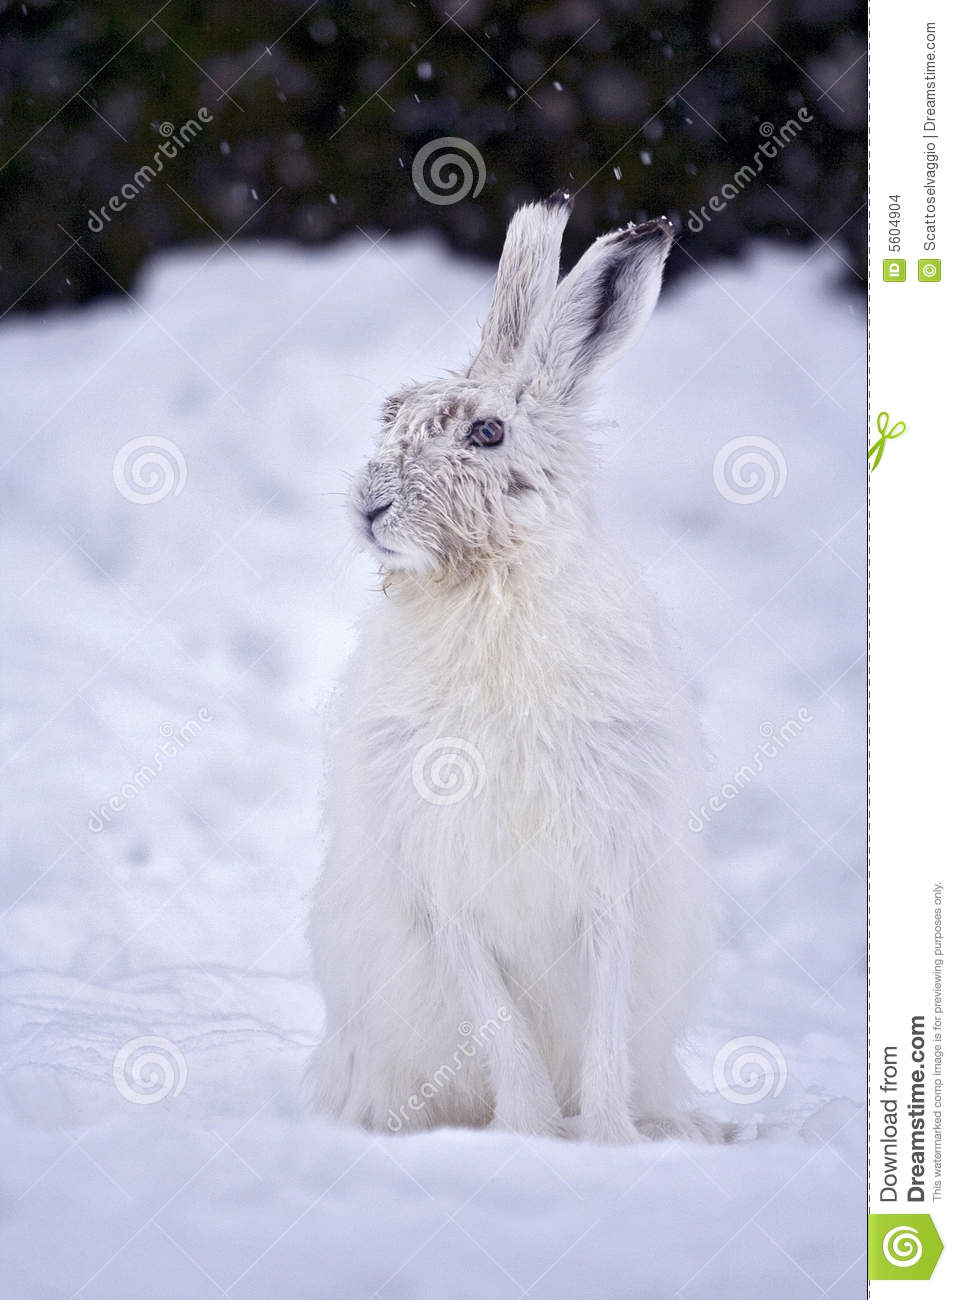 Mountain Hare (Lepus timidus) similar to Blue Hare, Tundra Hare , Variable Hare, White Hare, Alpine Hare and Irish Hare